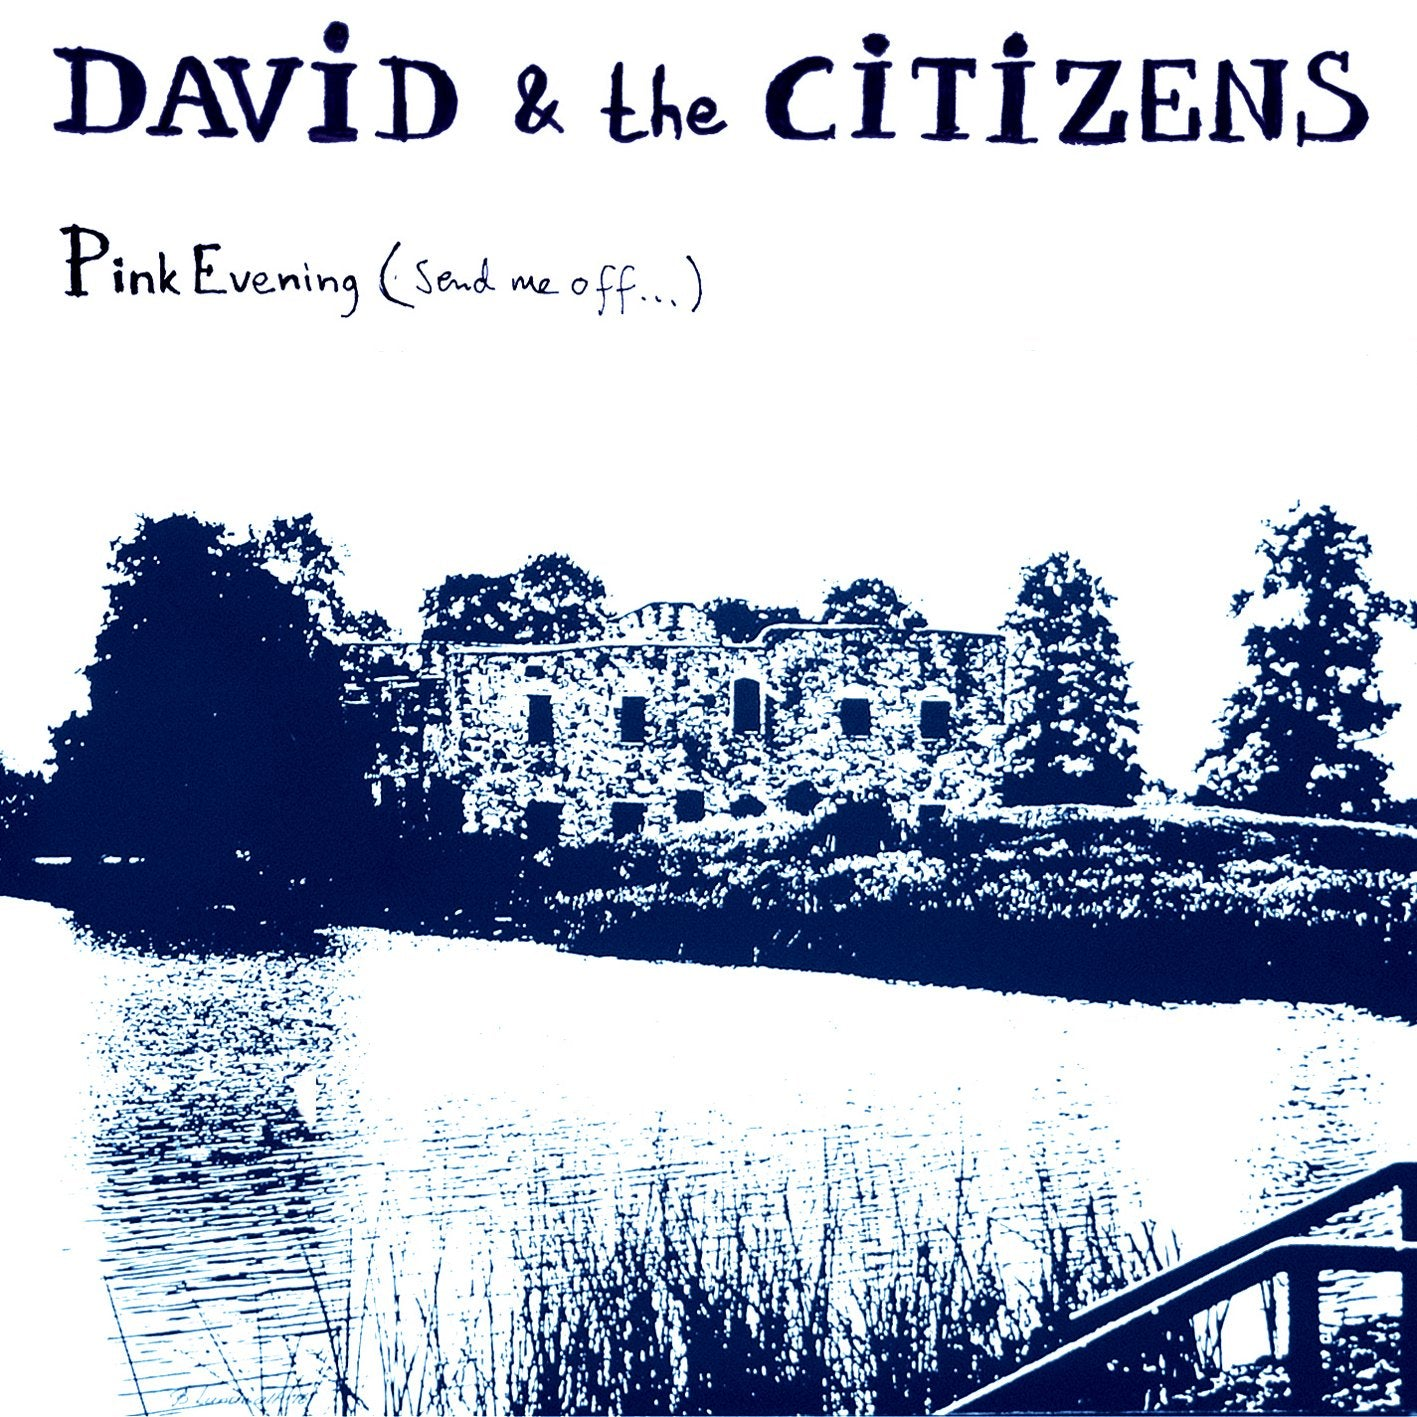 David & the Citizens - Pink Evening (Send Me Off…) (CD Single)